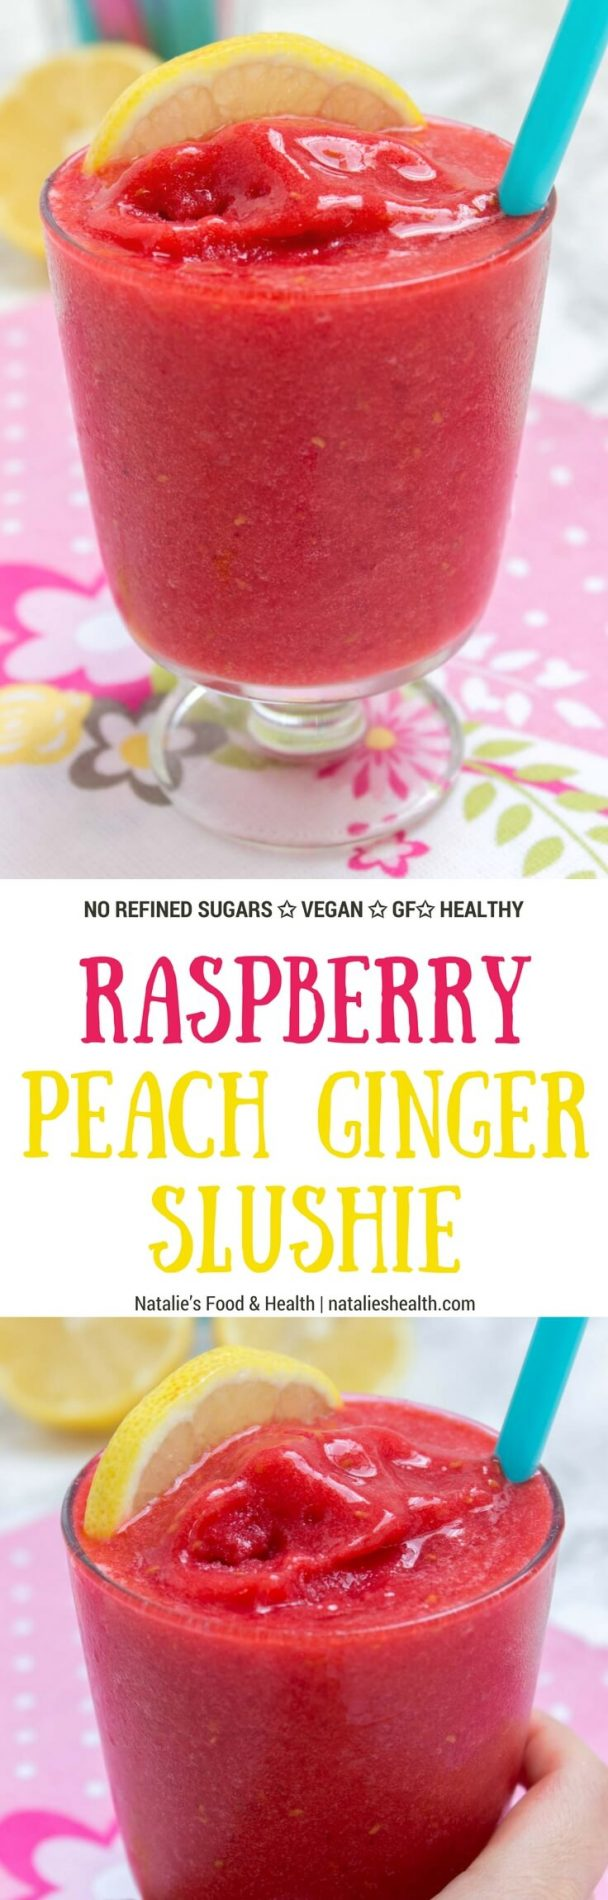 Flavorful and dazzling, Raspberry Peach Ginger Slushie is easy summer refreshment that will power you up with vitamins. Smashed summer fruits with the addition of aromatic ginger is something that will delight you and the kids. This slushie is sweet but made refined sugar-free and super HEALTHY. A must try this summer. #summer #drinks #kidsfriendly #family #vegan #sugarfree #glutenfree #fit #fruits #skinny | natalieshealth.com